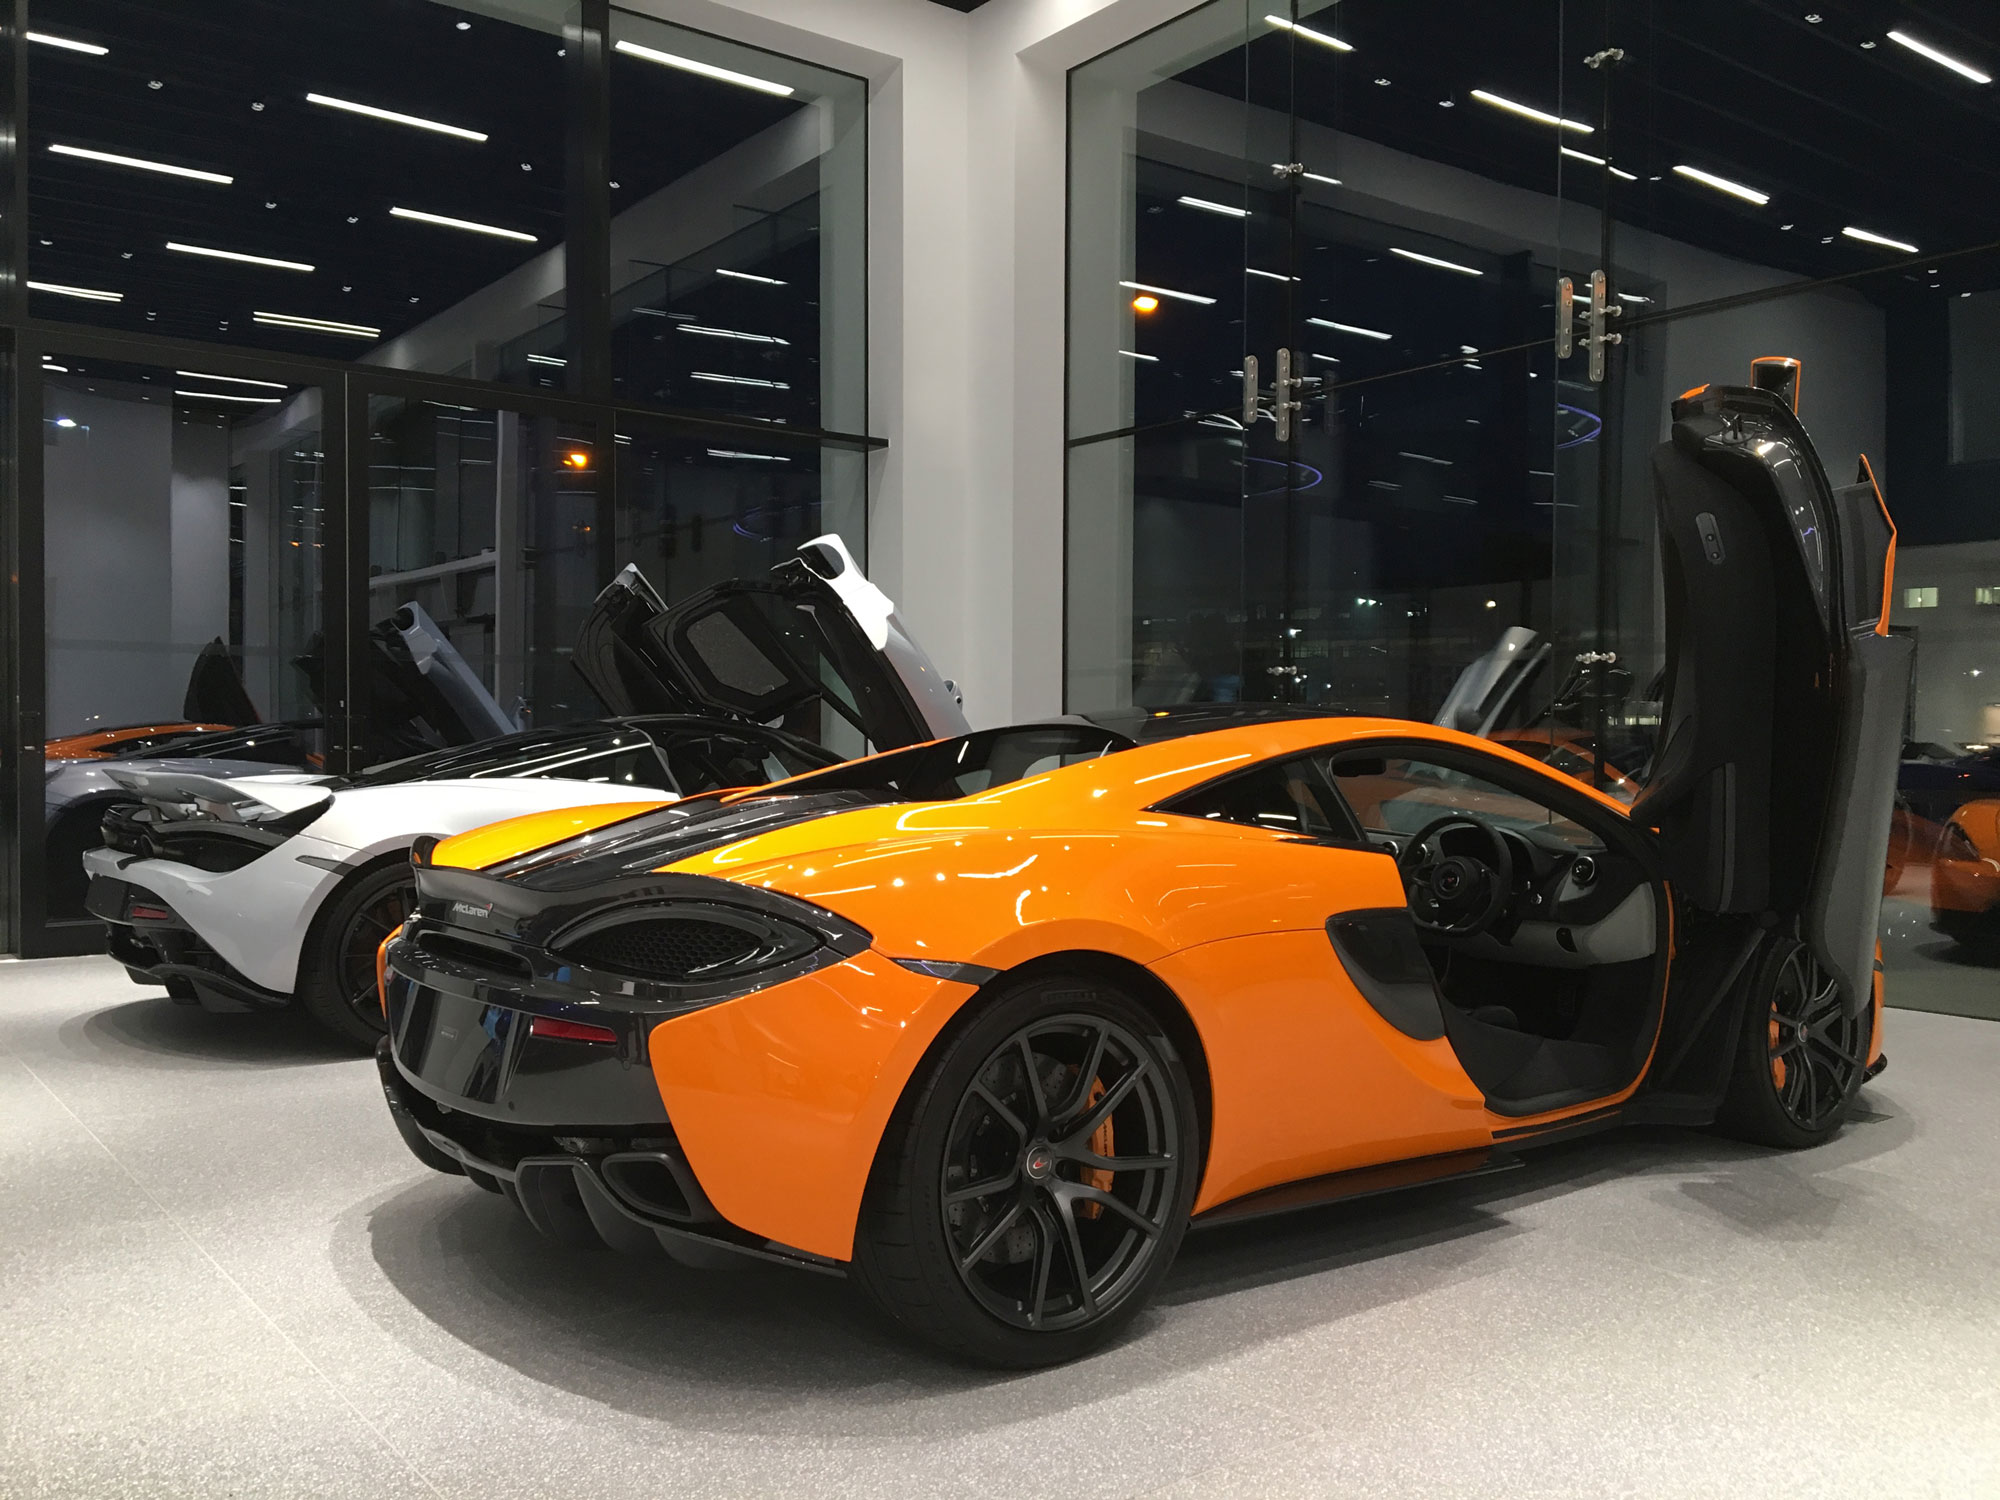 04-McLaren-Hatfield-Showroom.jpg